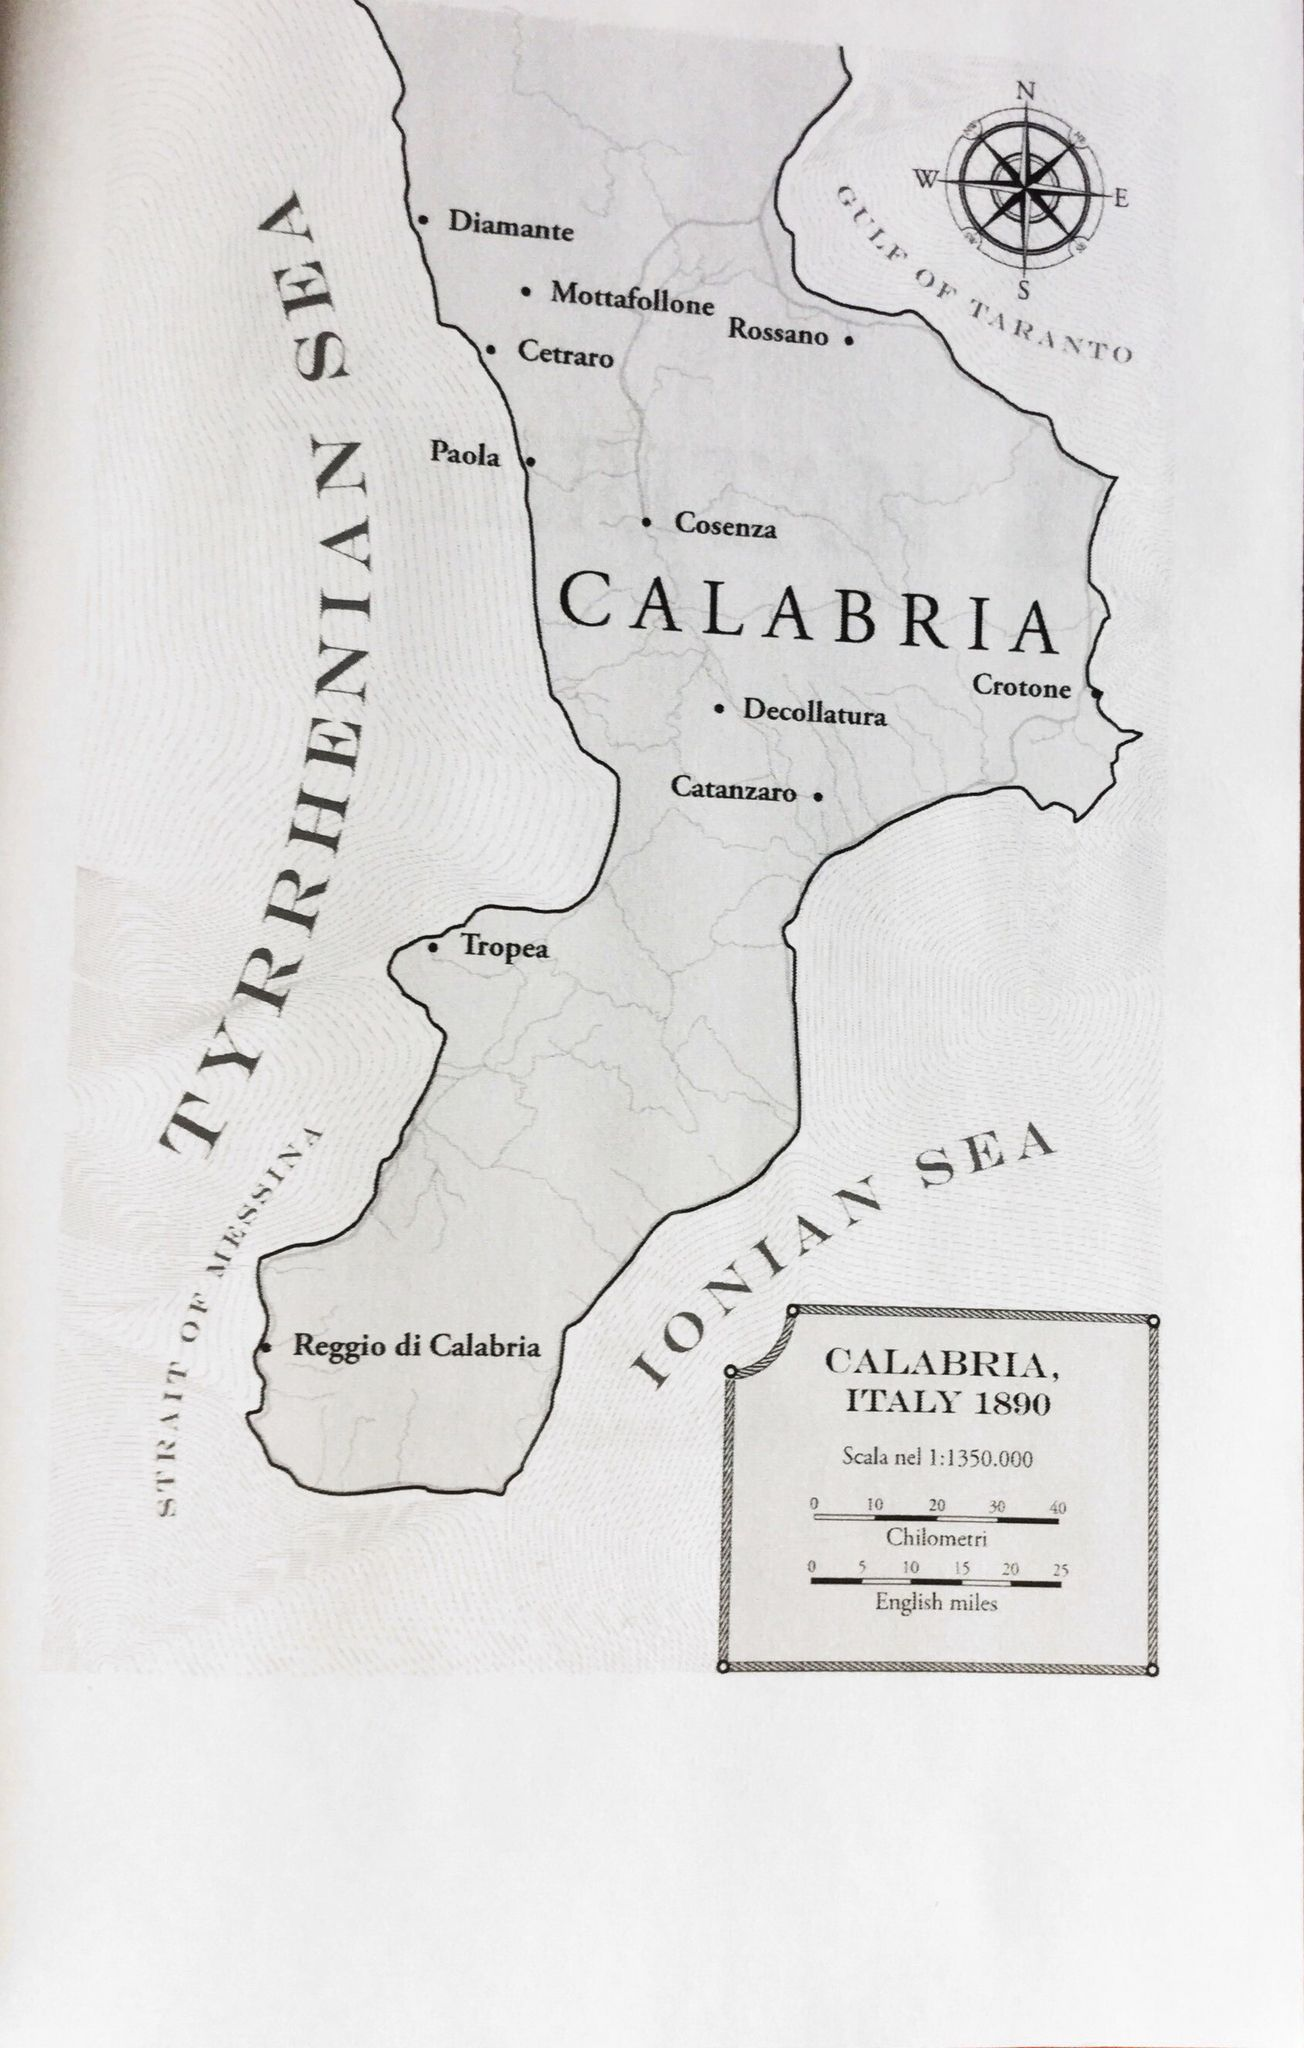 Map of Calabria Italy 1890 during time of The Inheritance Included